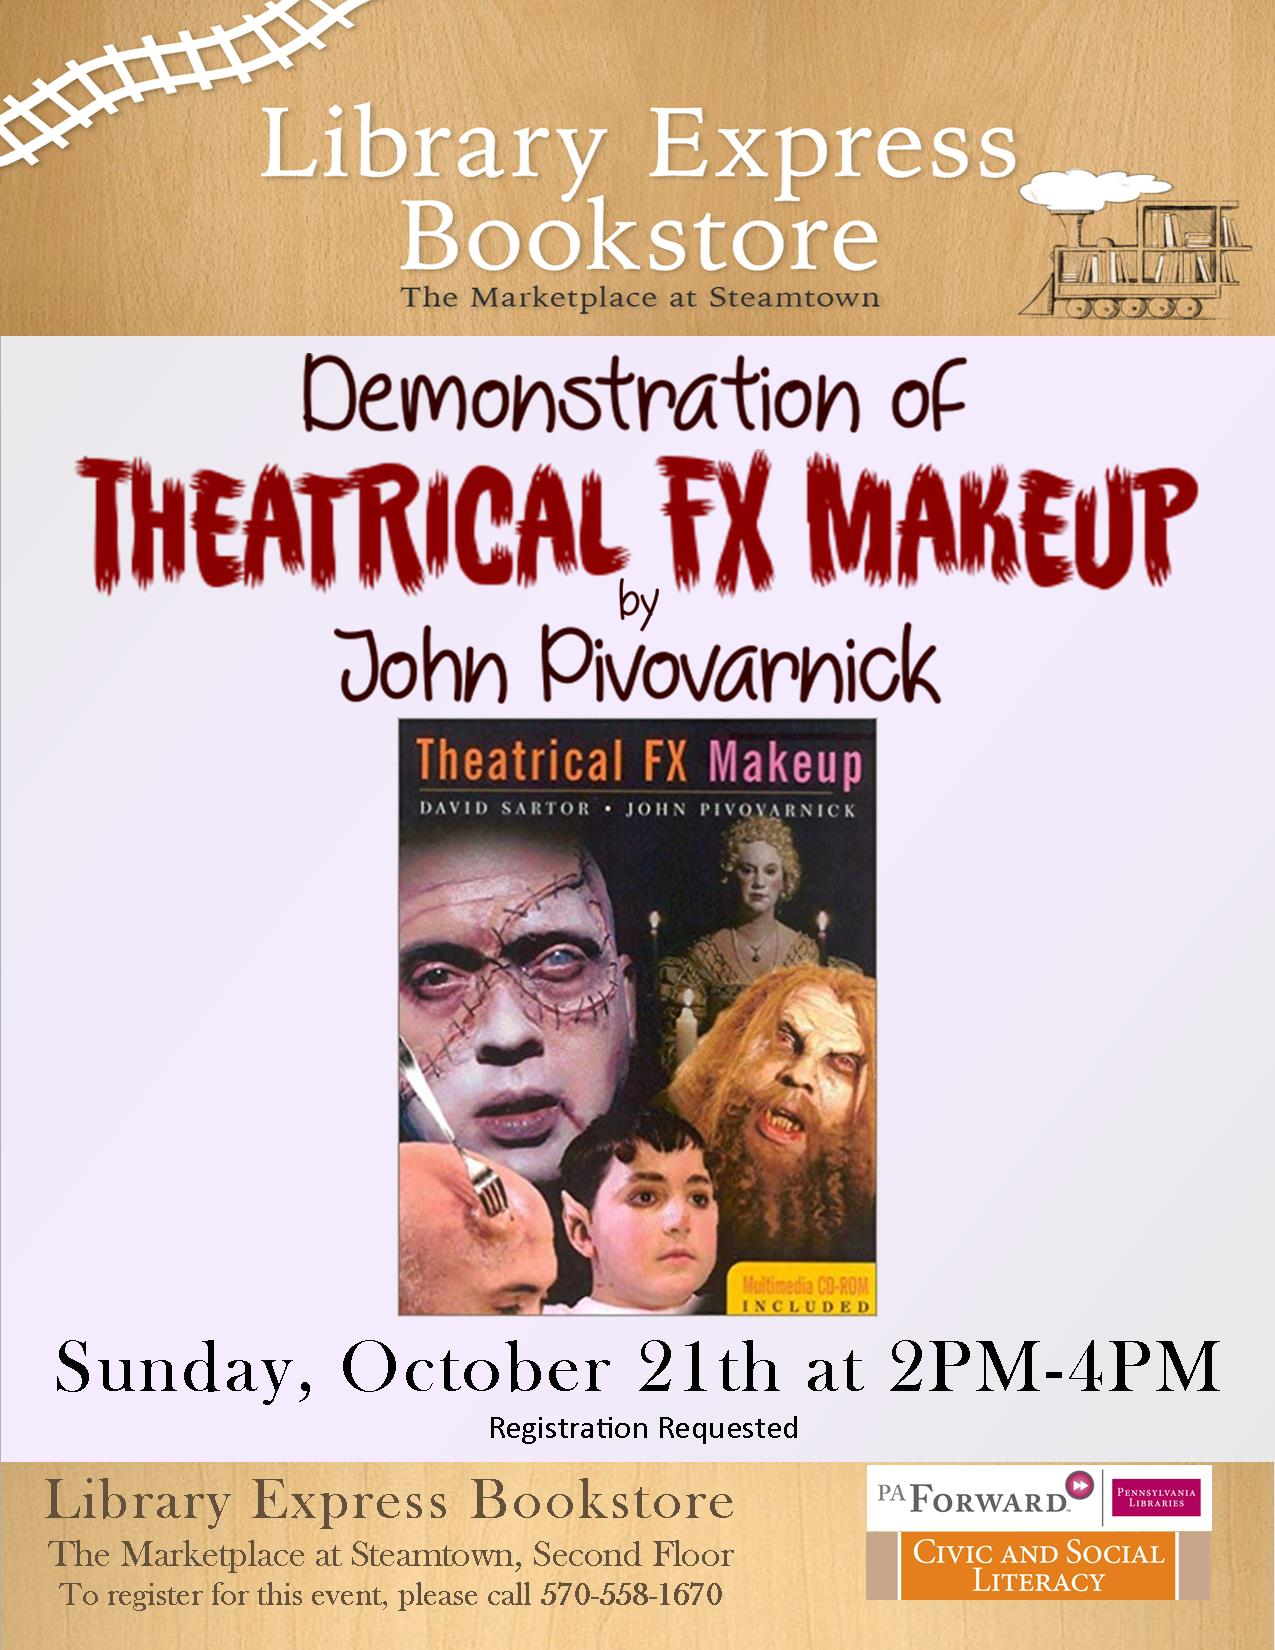 Theatrical FX Make-Up with John Pivovarnick